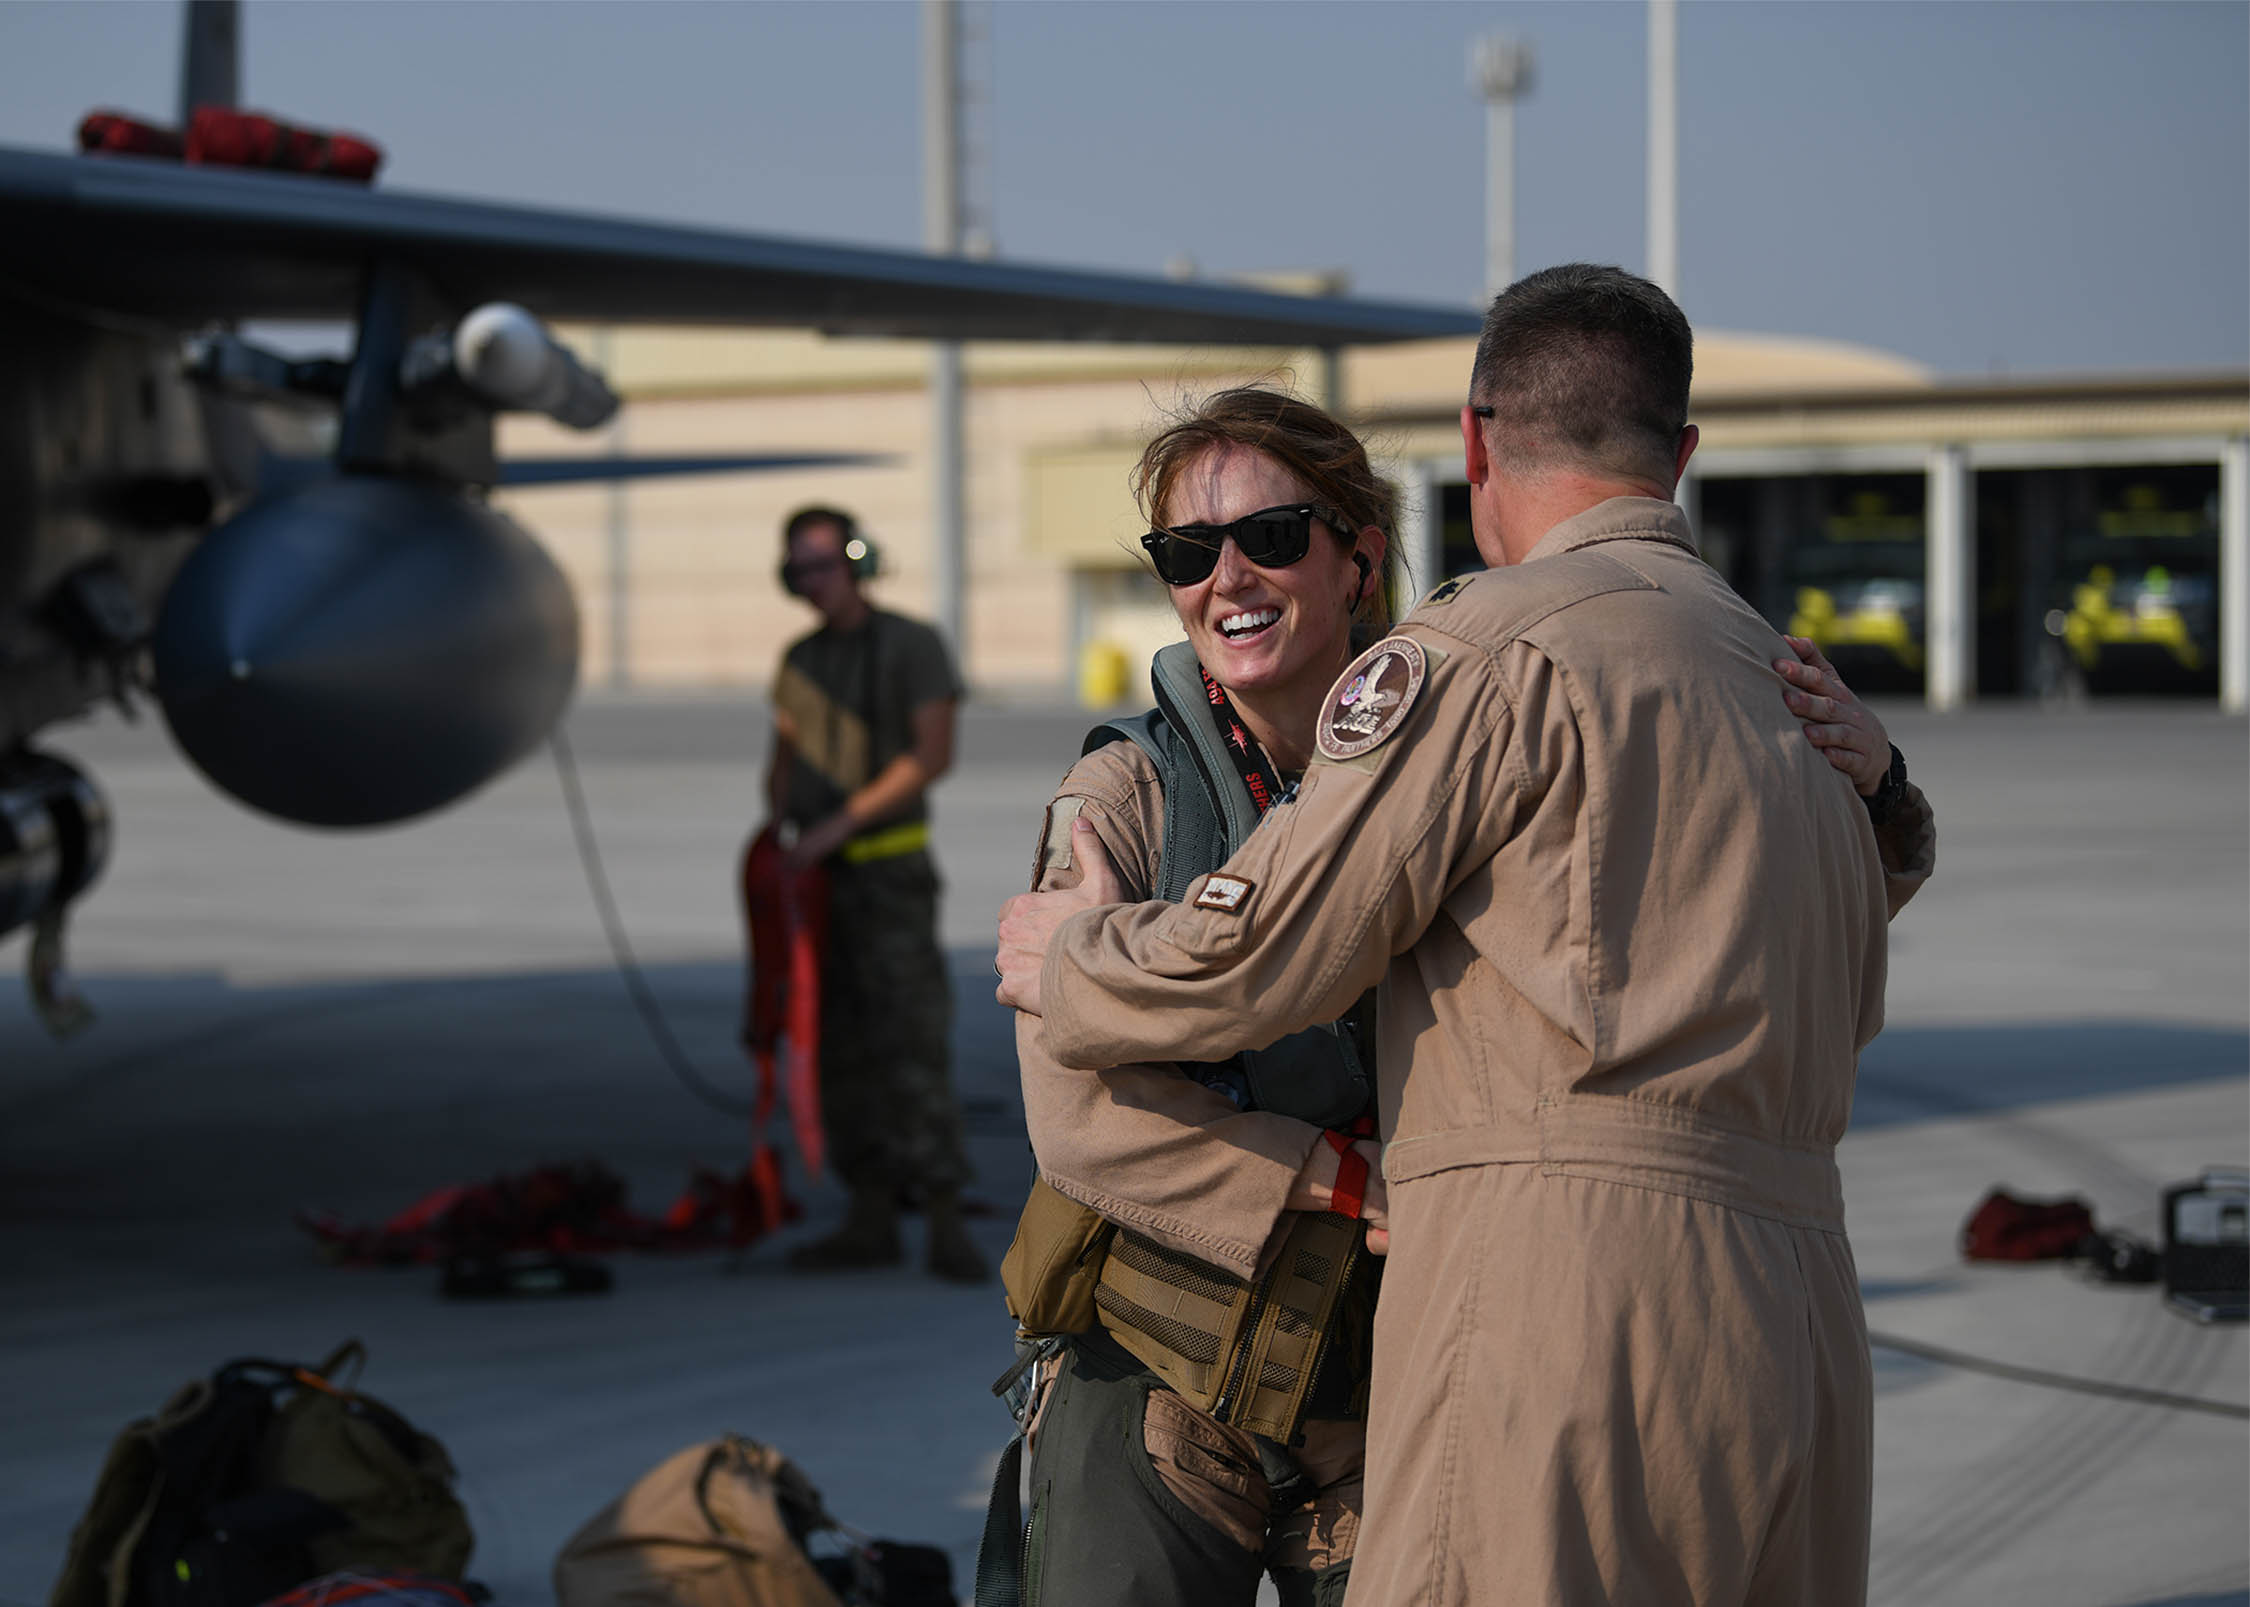 Lt. Col. Jaina Donberg, 494th Fighter Squadron commander, greets Lt. Col. Ryan Lippert, 494th FS assistant director of operations, Oct. 21 after arriving at Al Dhafra Air Base, United Arab Emirates. (Staff Sgt. Anna-kay Ellis/Air Force)